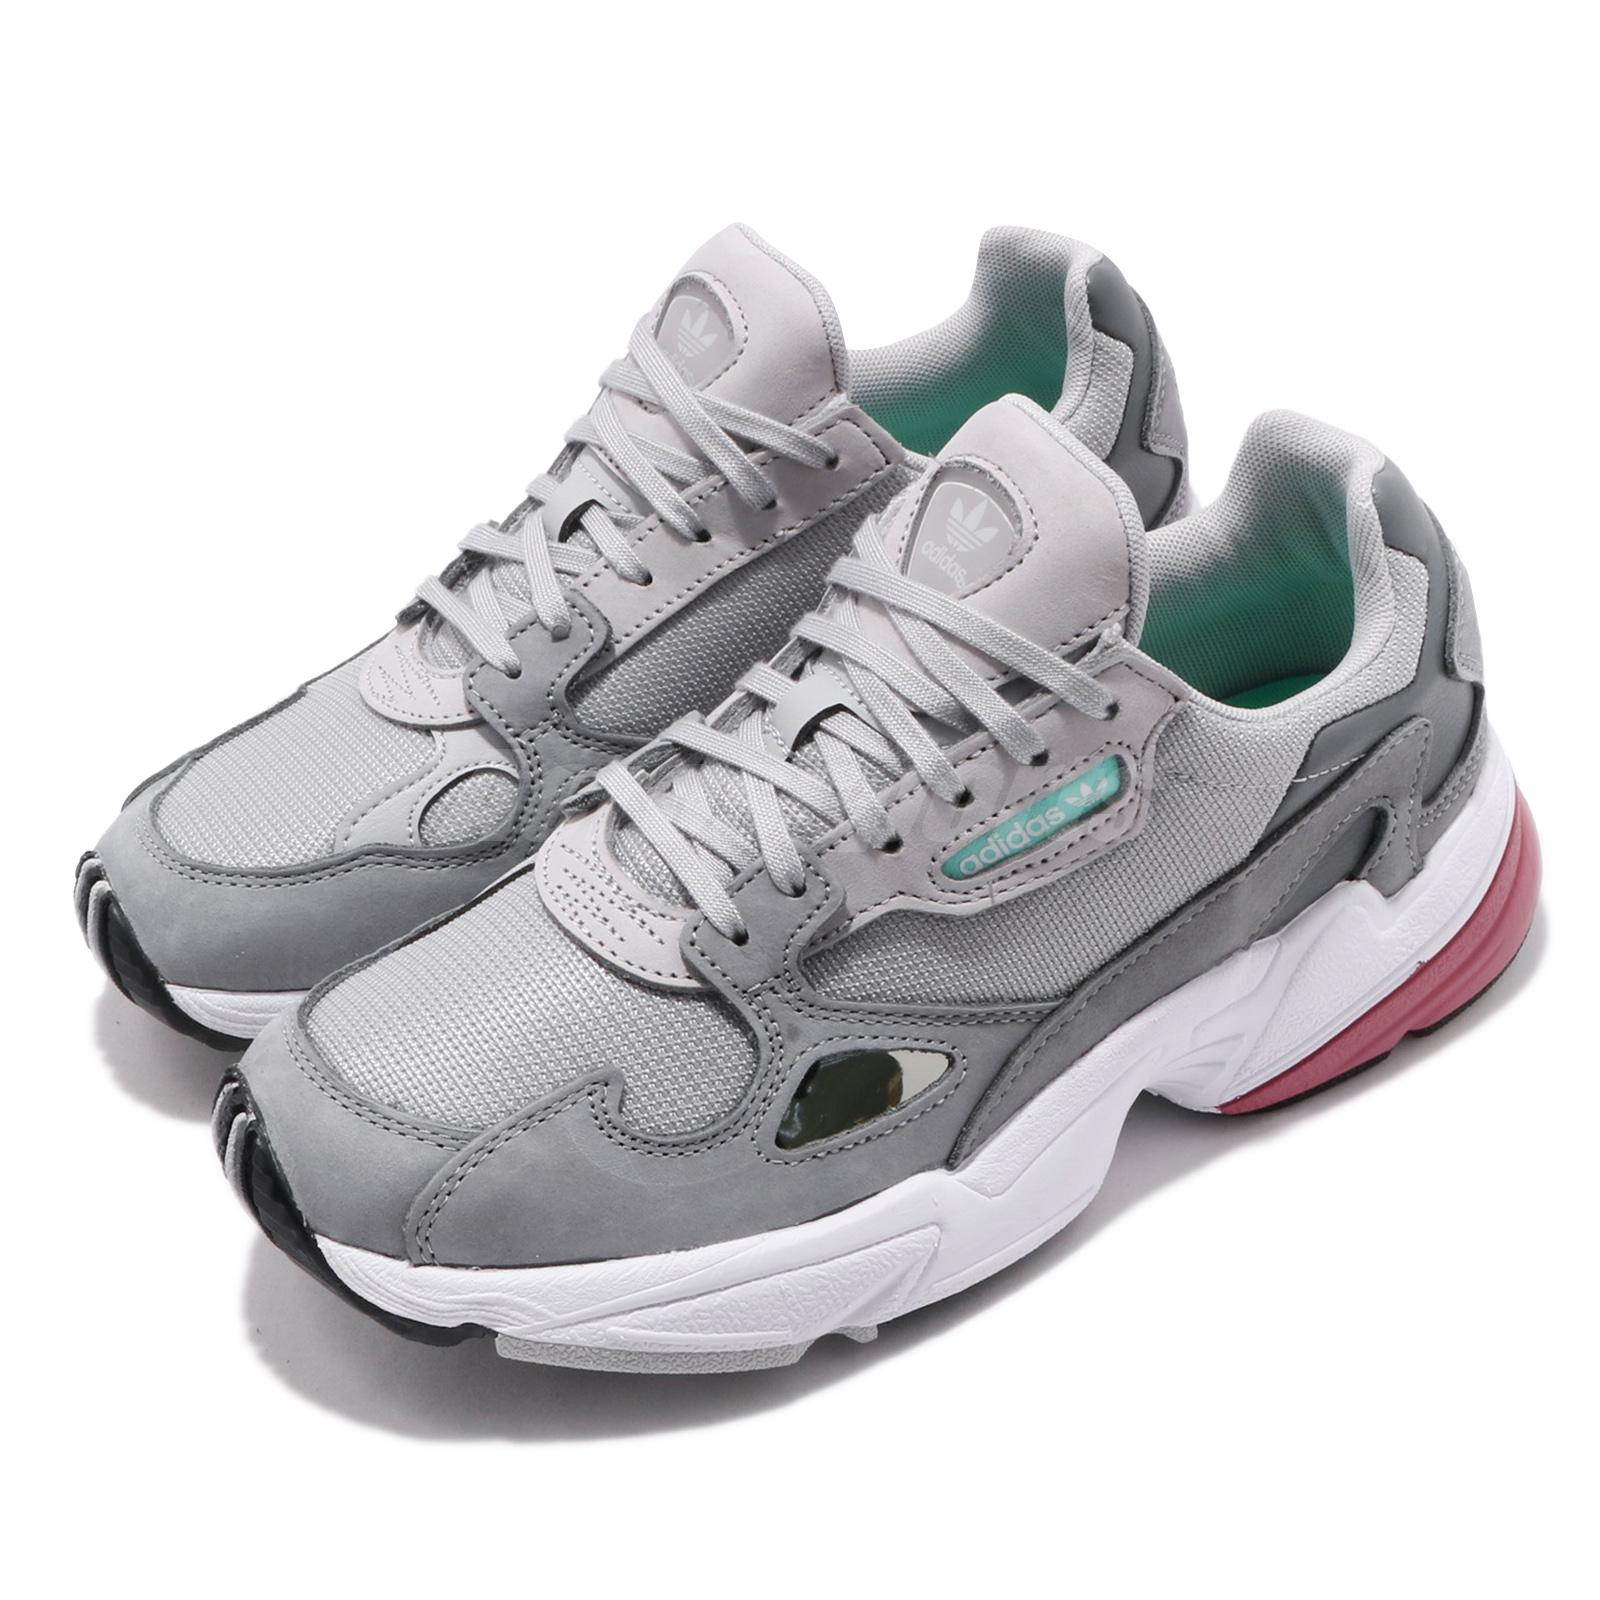 033ebdad24a Details about adidas Originals Falcon W Grey Trace Maroon Women Running  Shoes Sneakers D96698